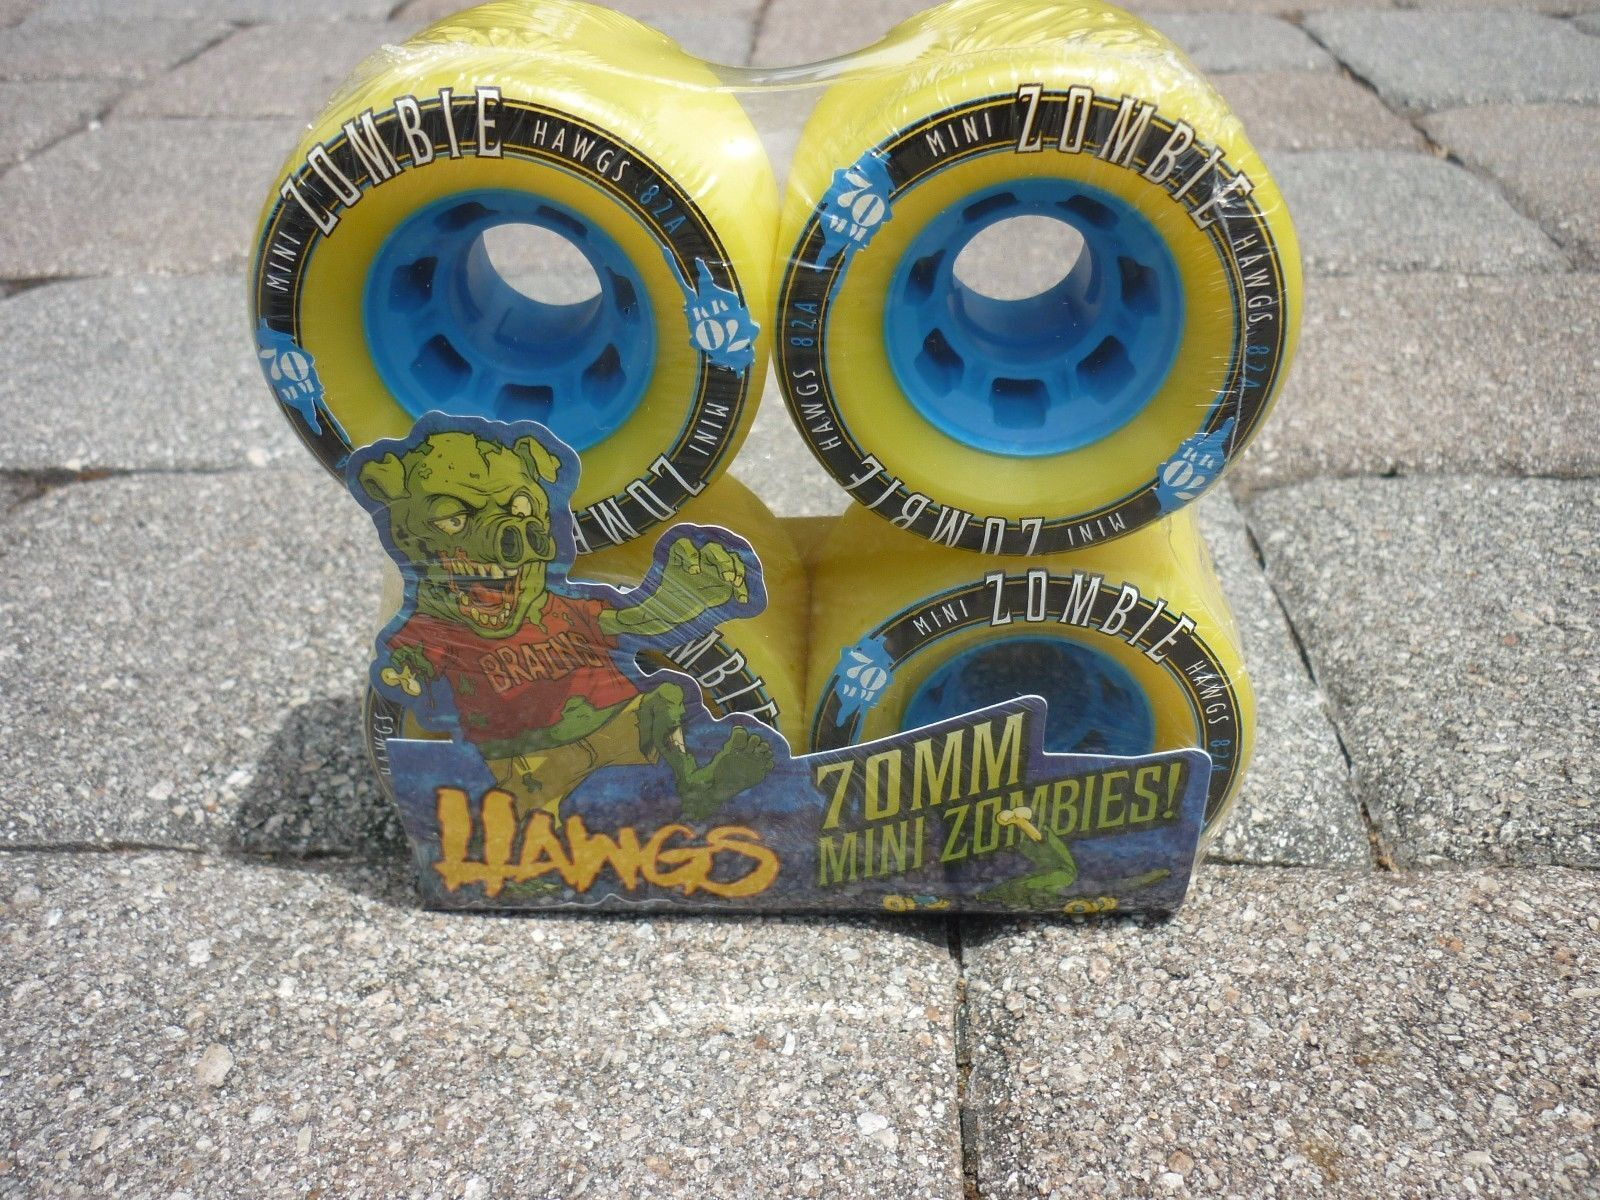 NEW Landyachtz Mini Zombie Hawgs  Wheels 70mm 82a Longboard S board set of 4  wholesale cheap